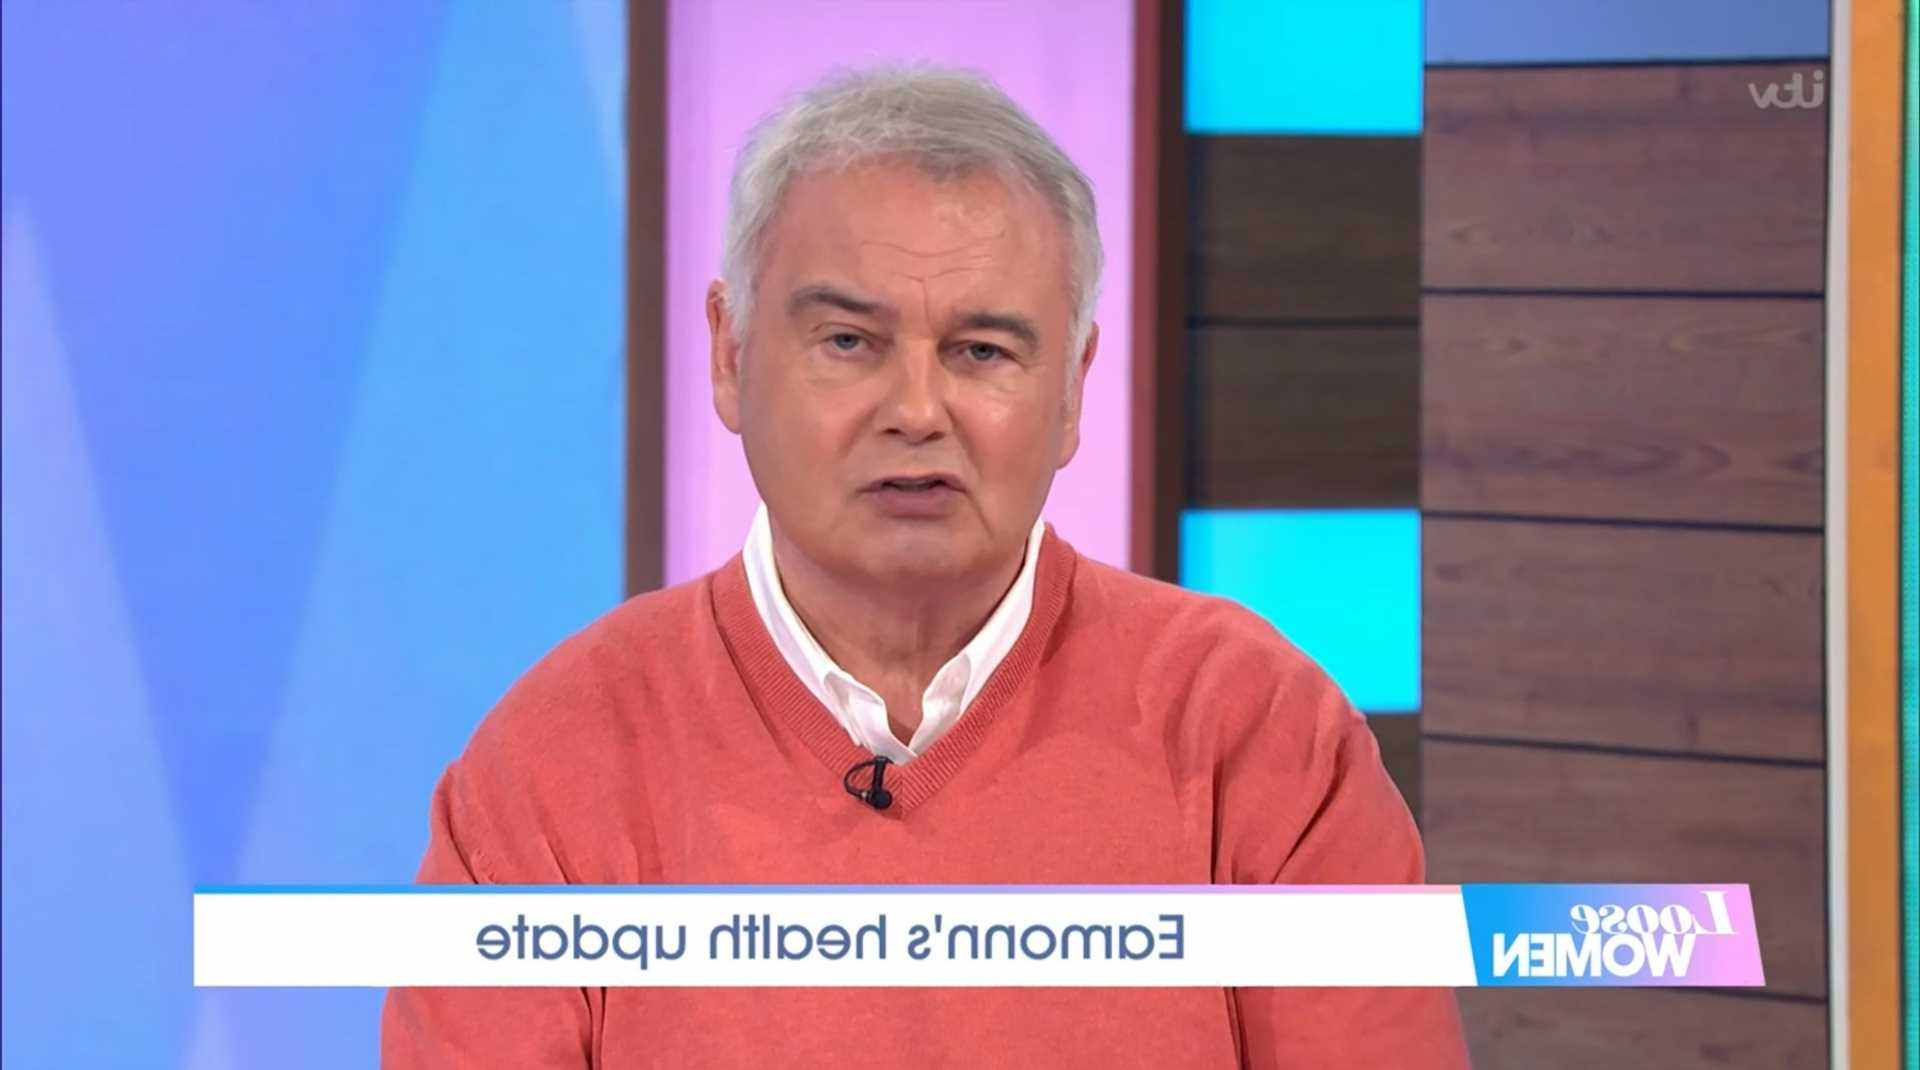 Eamonn Holmes on crutches as he shares heartbreaking update on his chronic pain battle